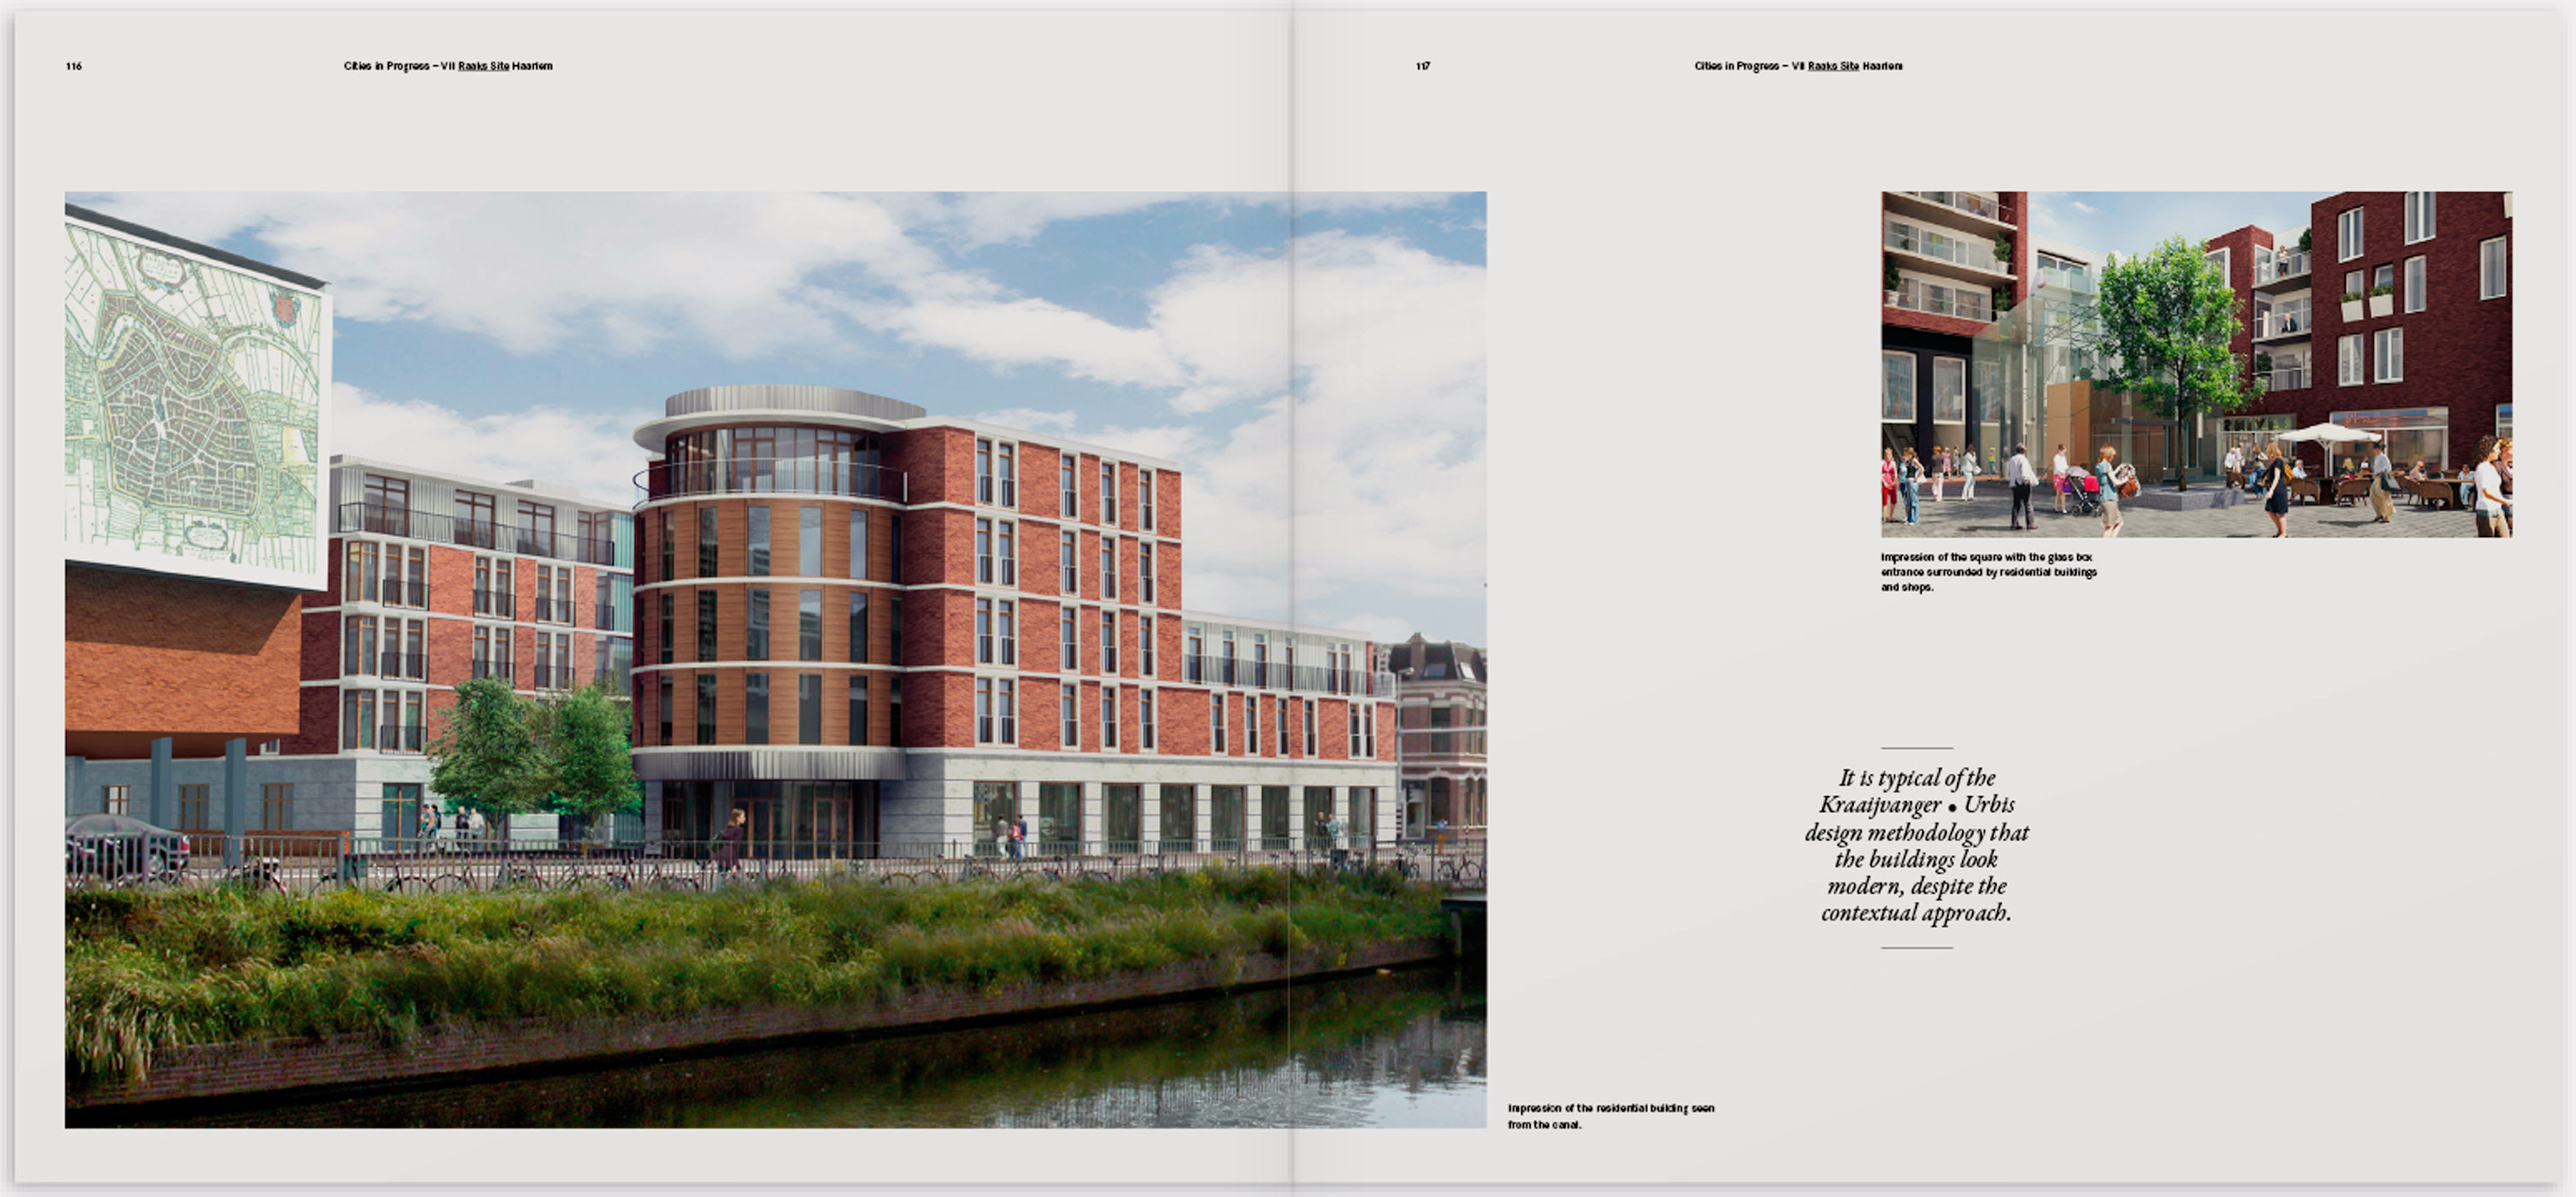 Kraaijvanger Urbis, book design, typography, architecture, cities in progress